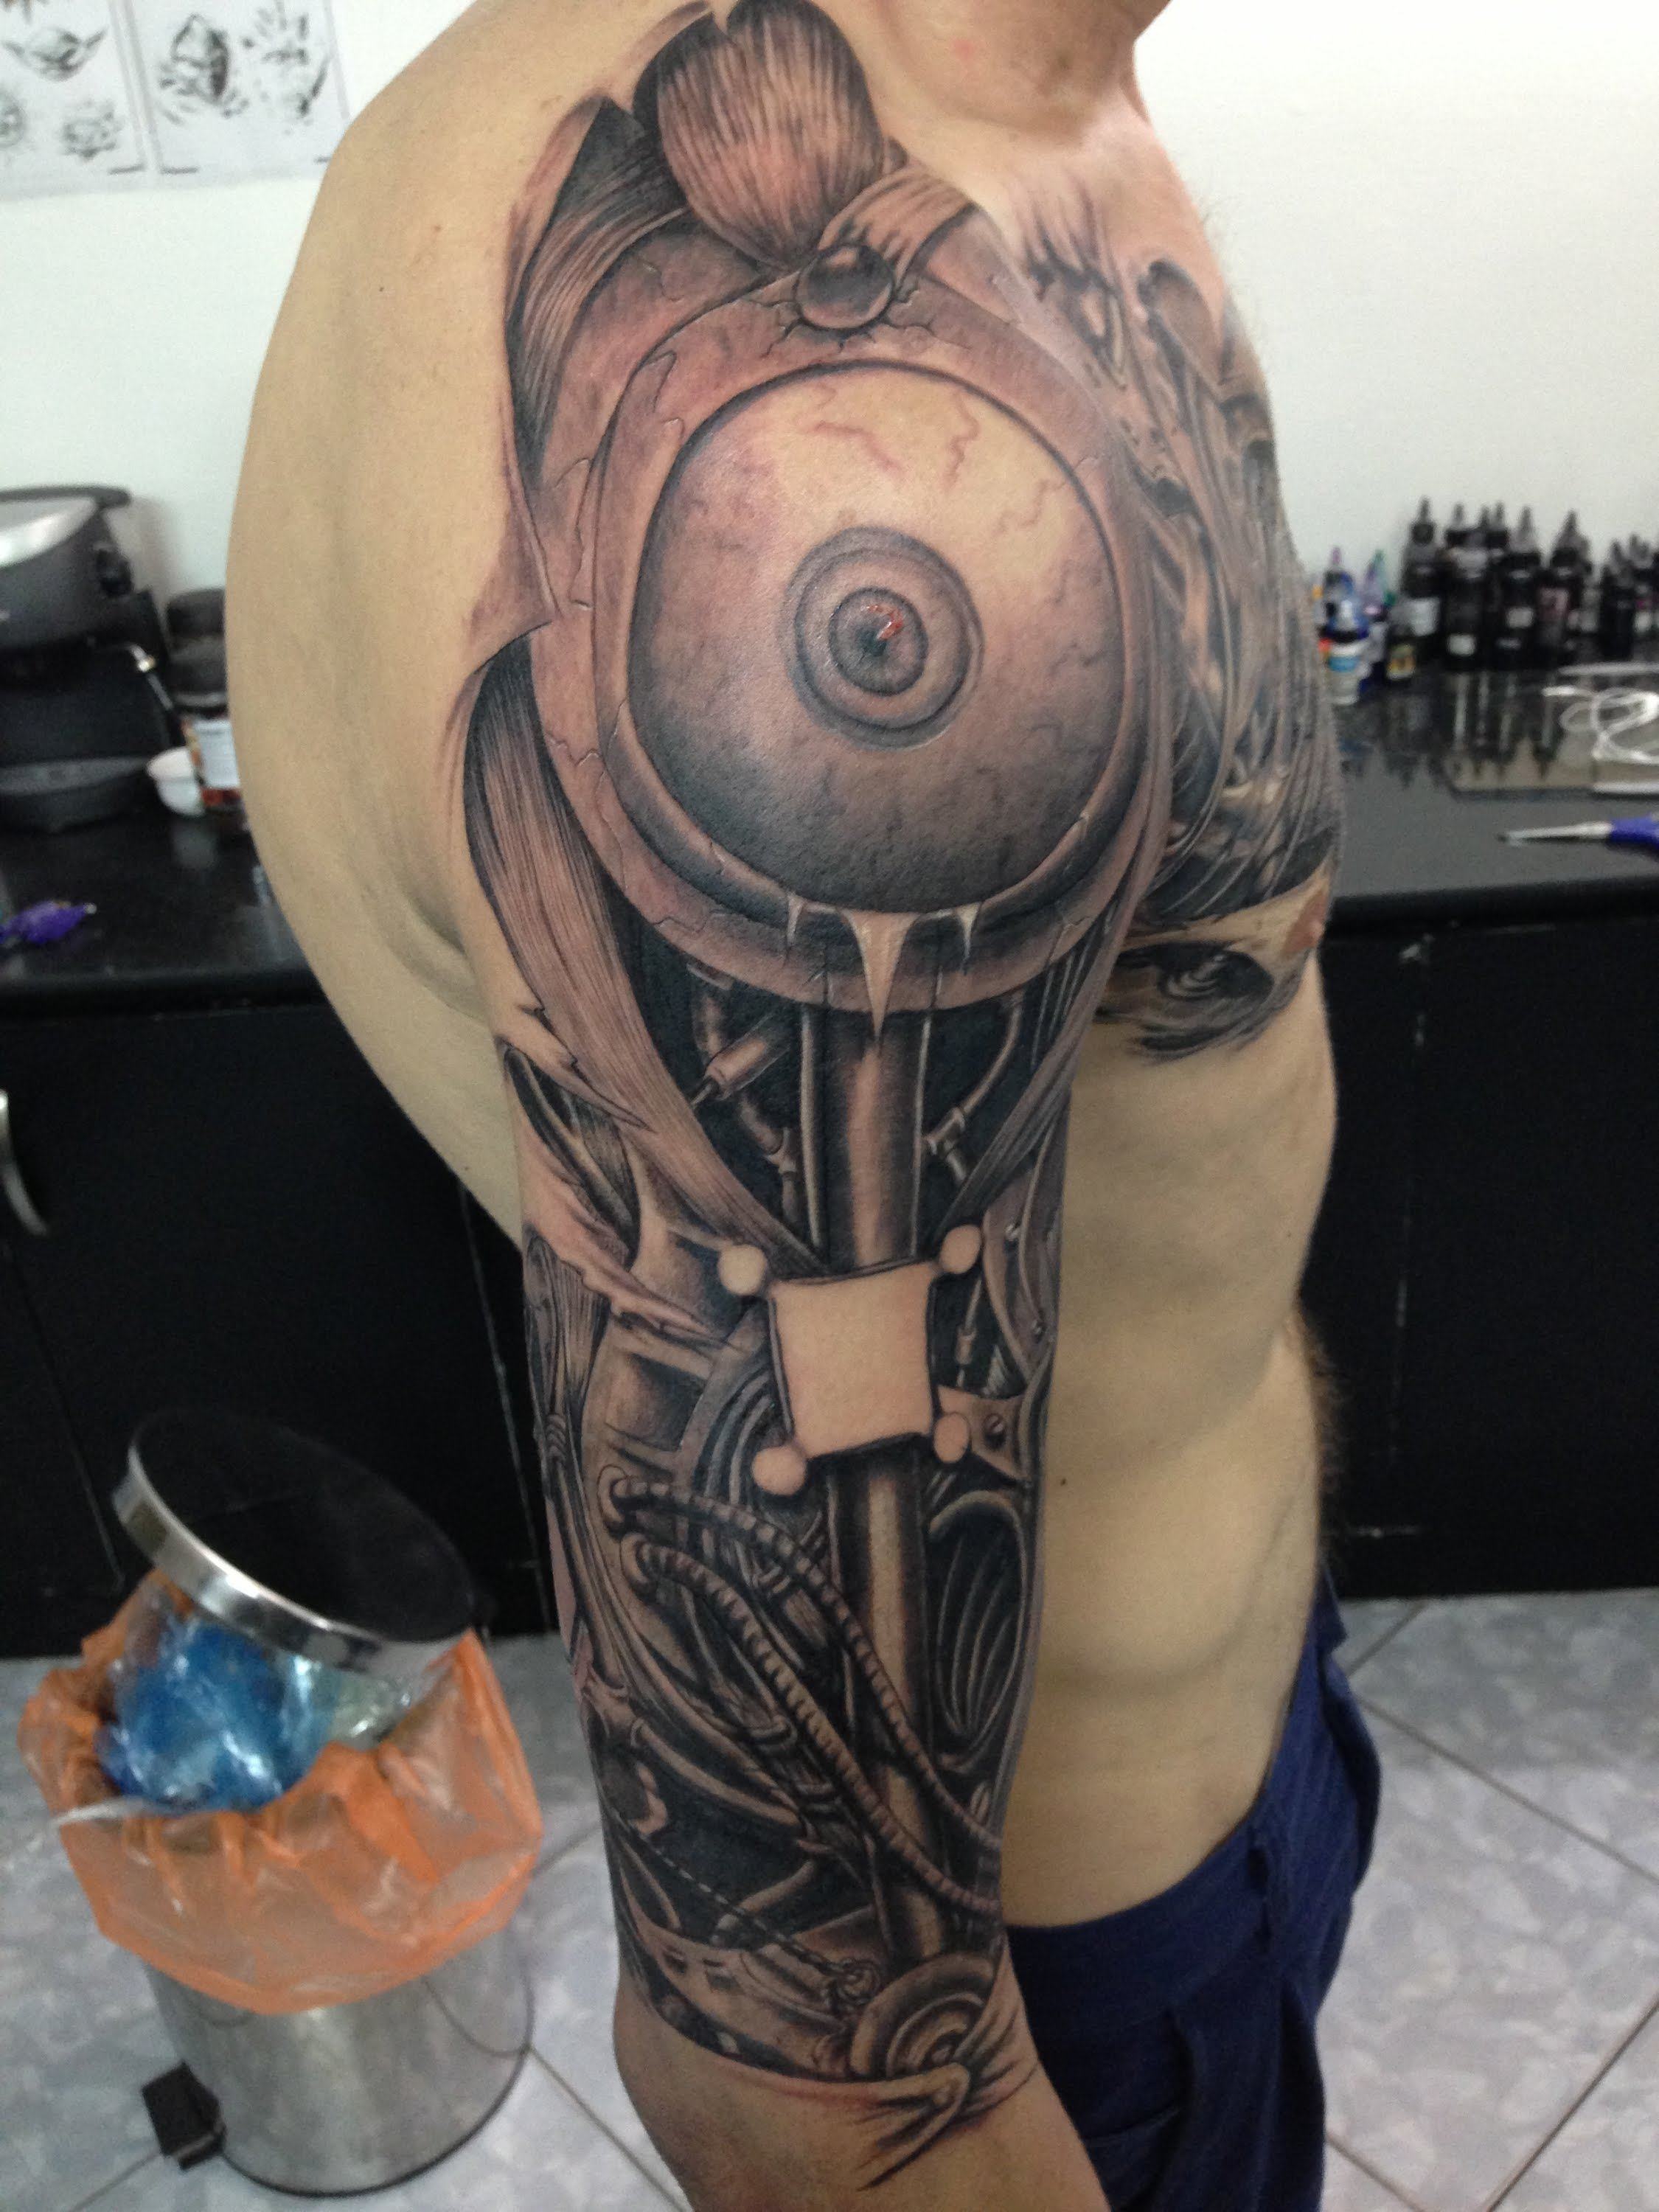 watch as 35 hours of tattooing turns a man into a machine tattoo videos ratta tattoo. Black Bedroom Furniture Sets. Home Design Ideas